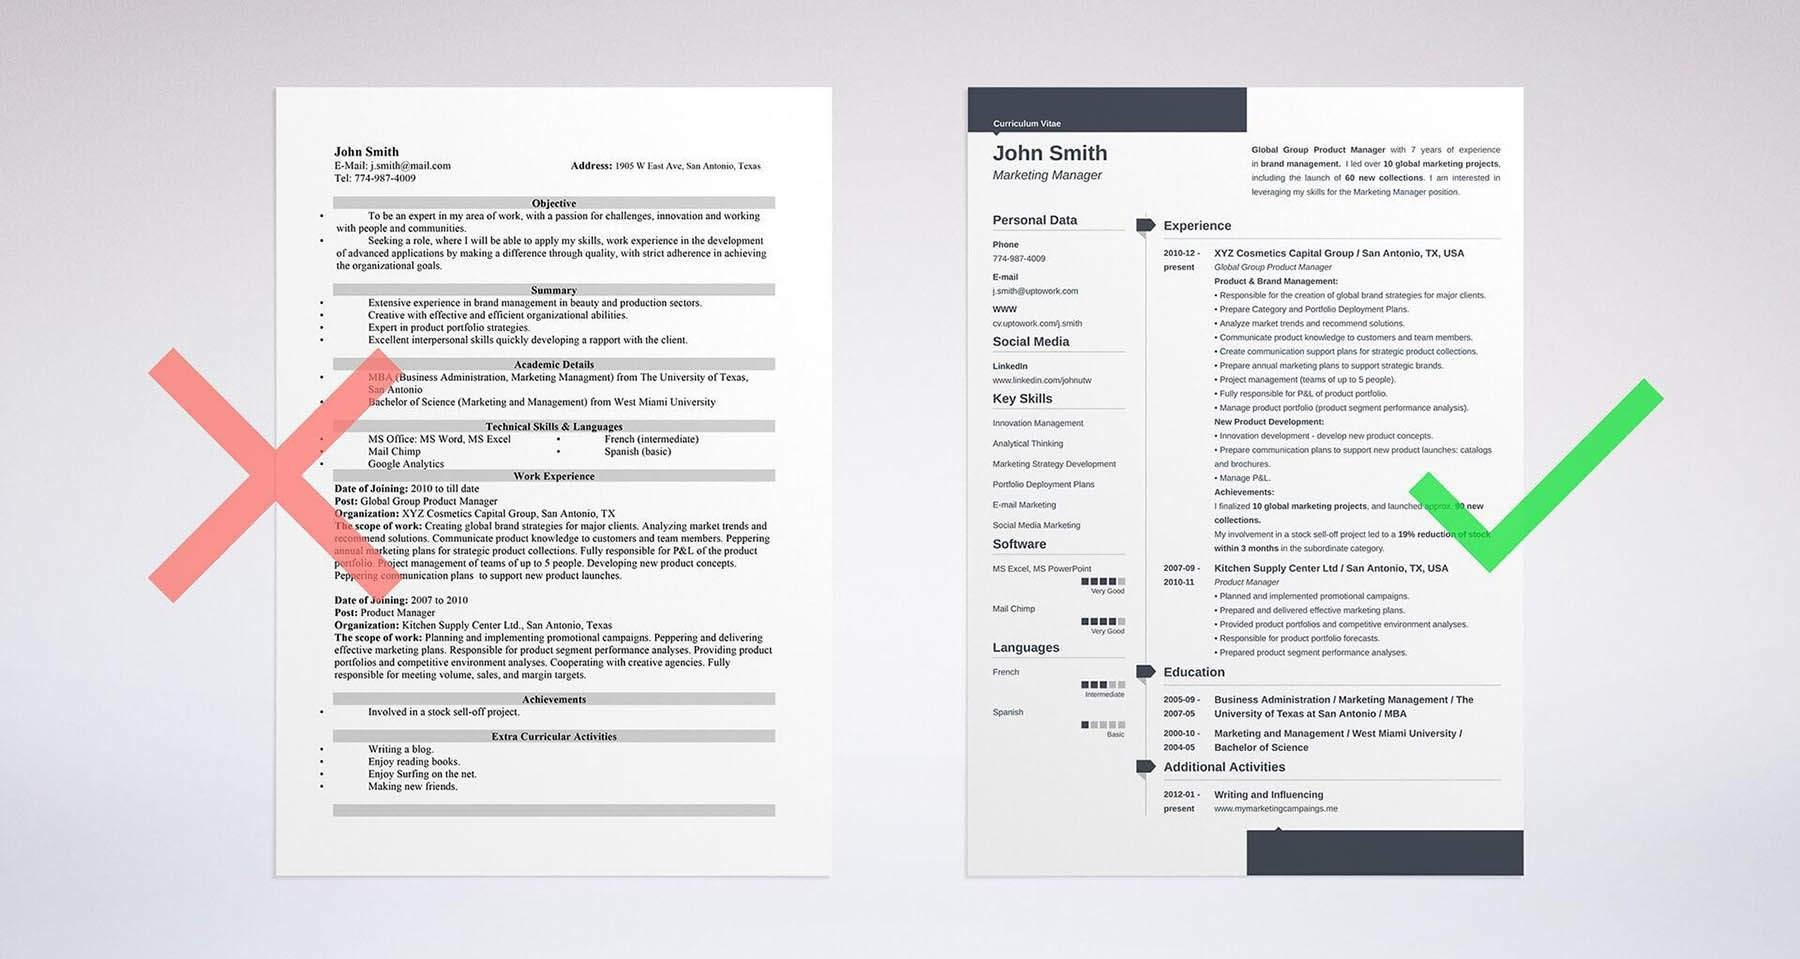 20 Resume Objective Examples - Use Them On Your Resume (Tips)